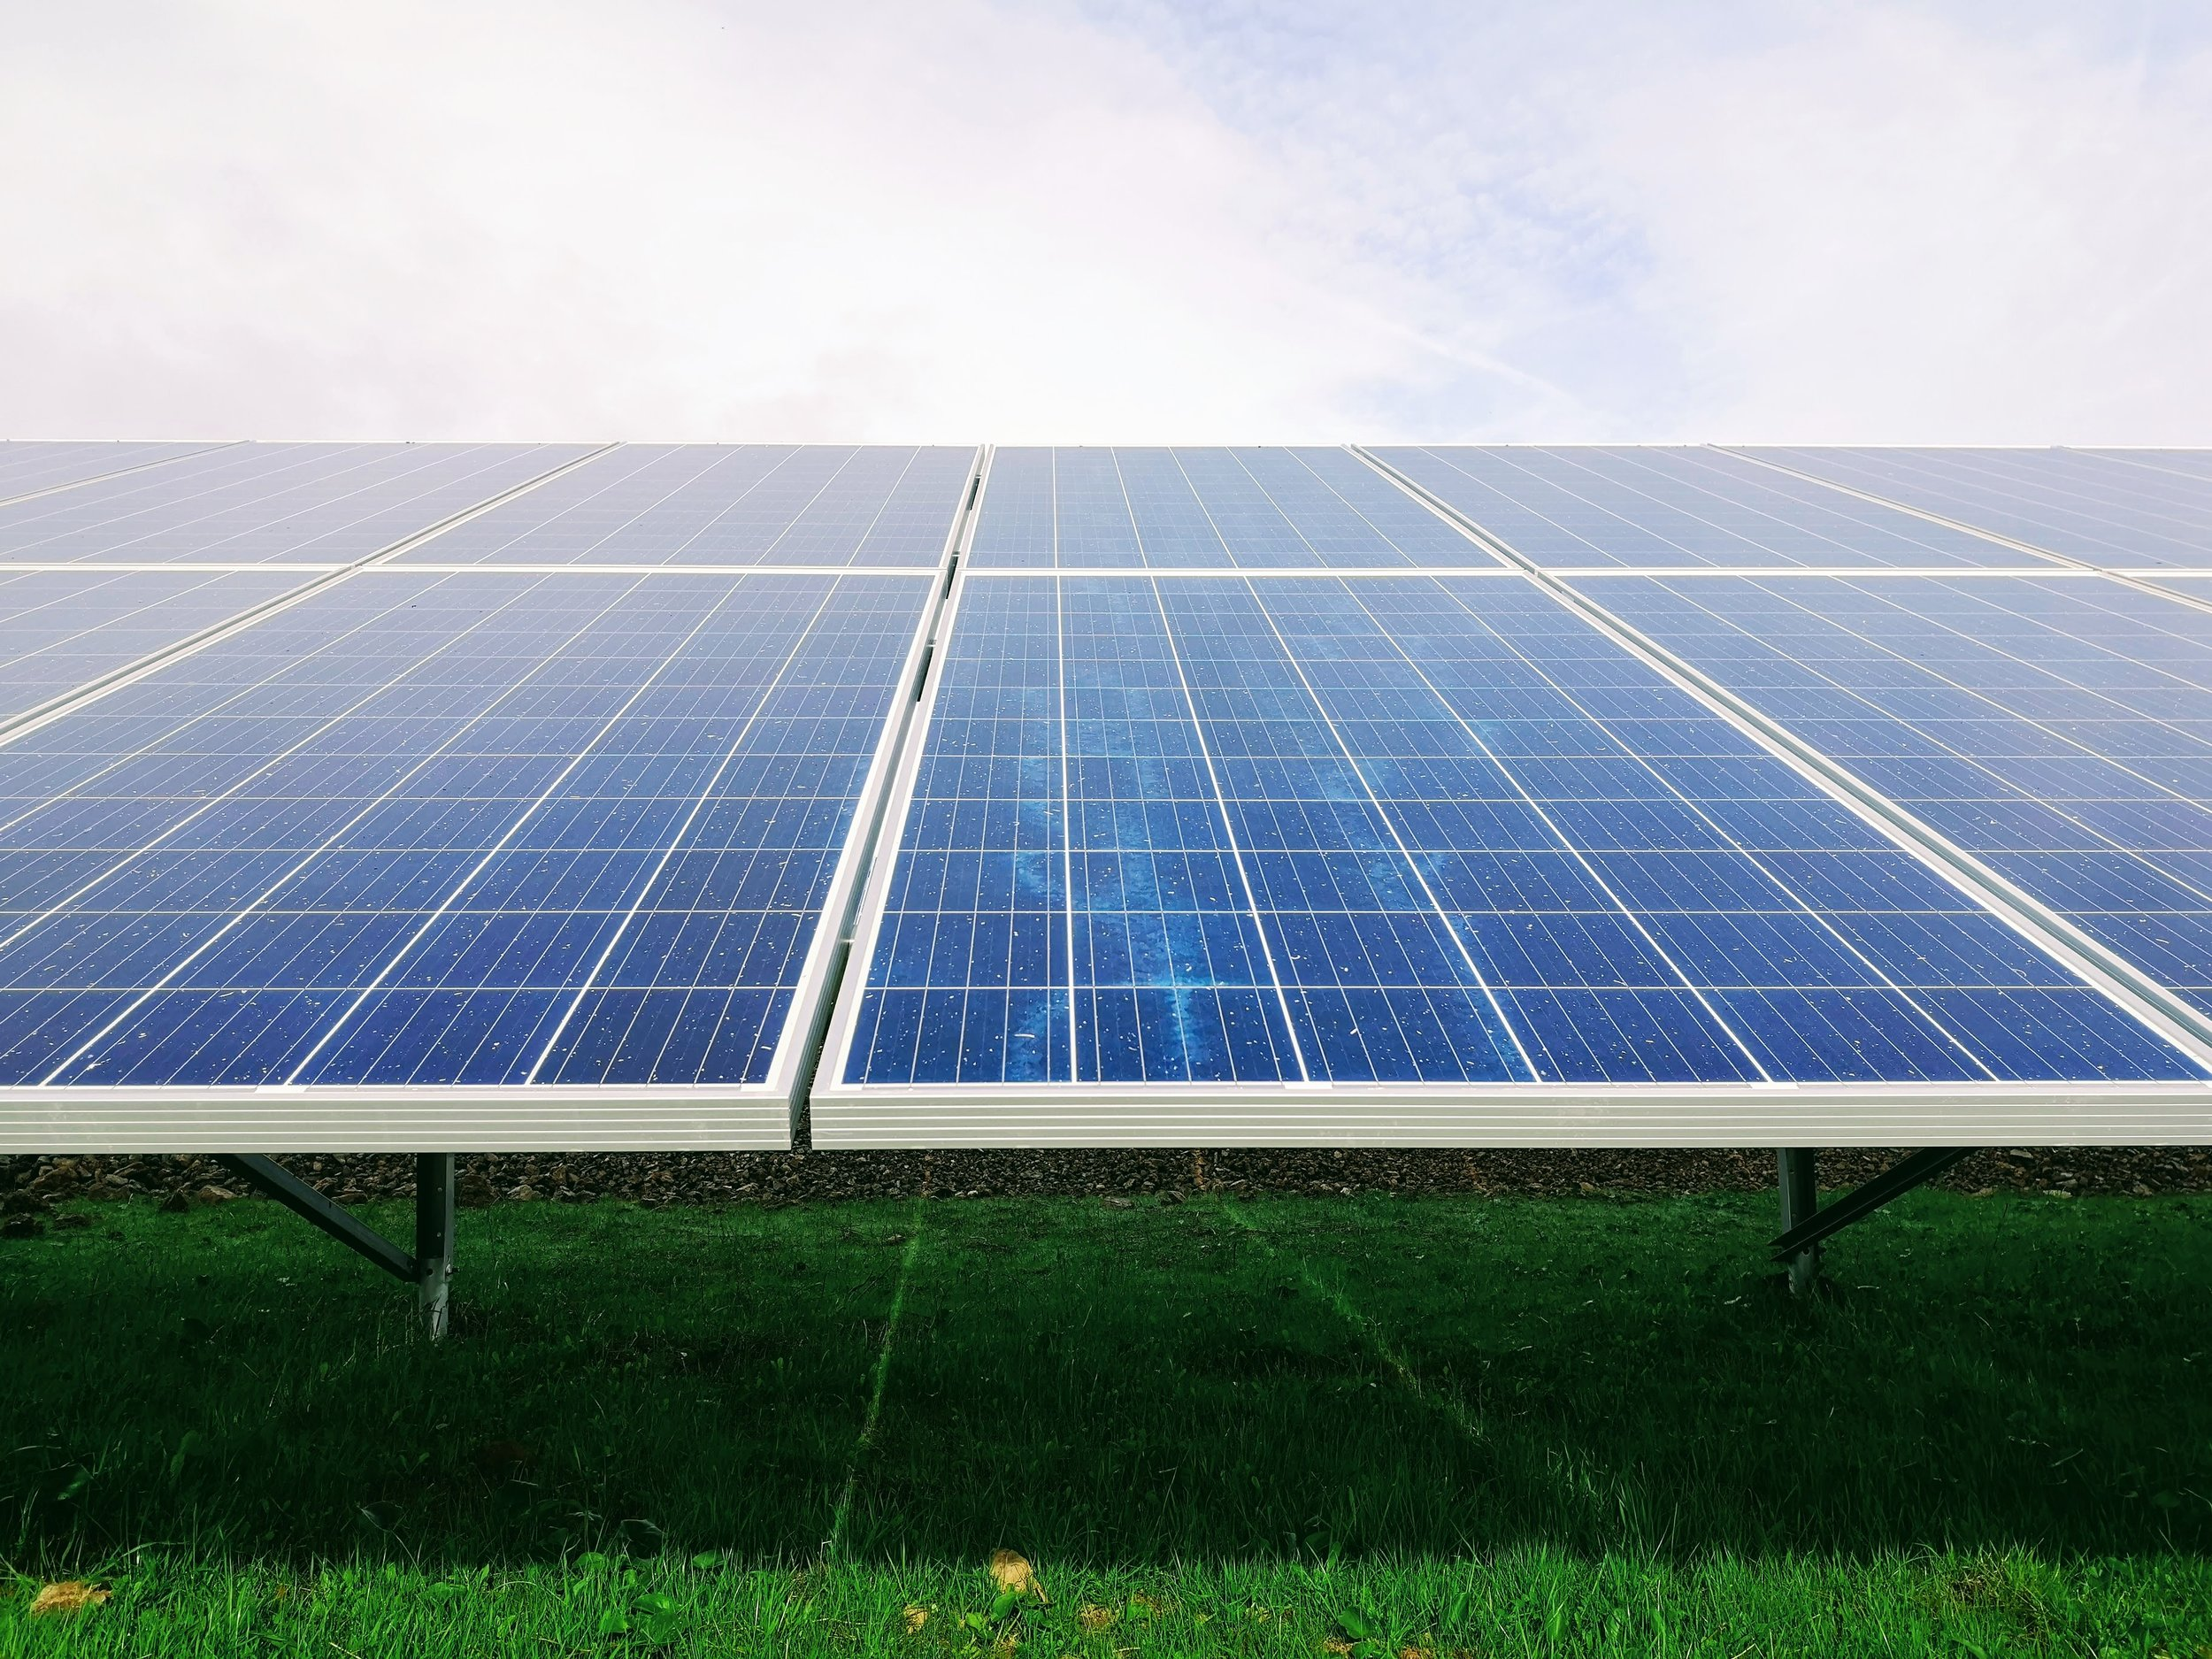 Invest in a better future - By paying a cheaper solar bill you are stimulating your local economy and funding the renewable energy industry allowing it to grow and make for a better future for energy.